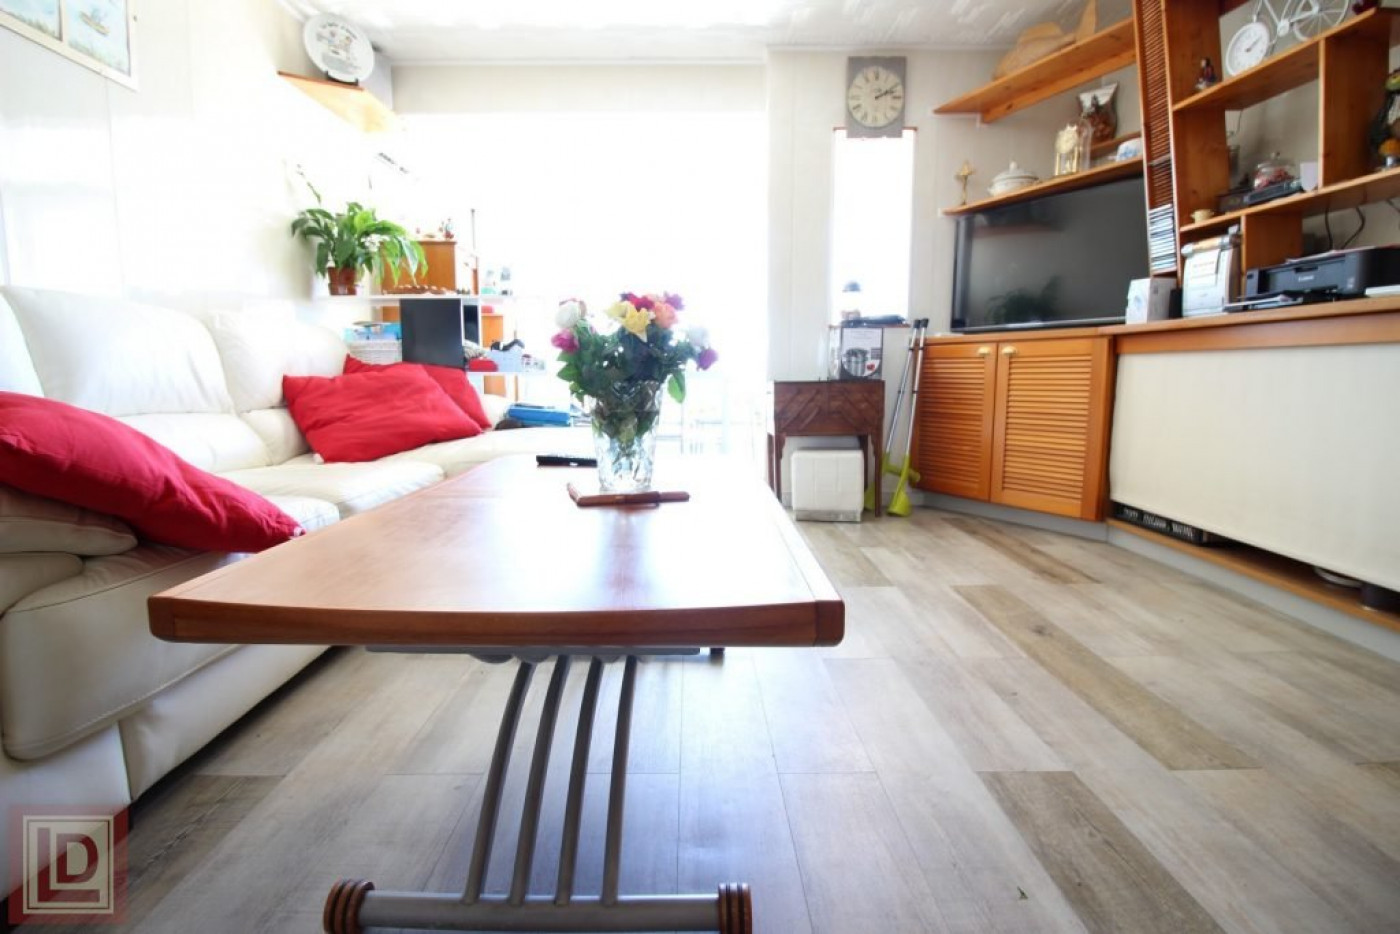 A vendre Gruissan 110231227 Ld immobilier